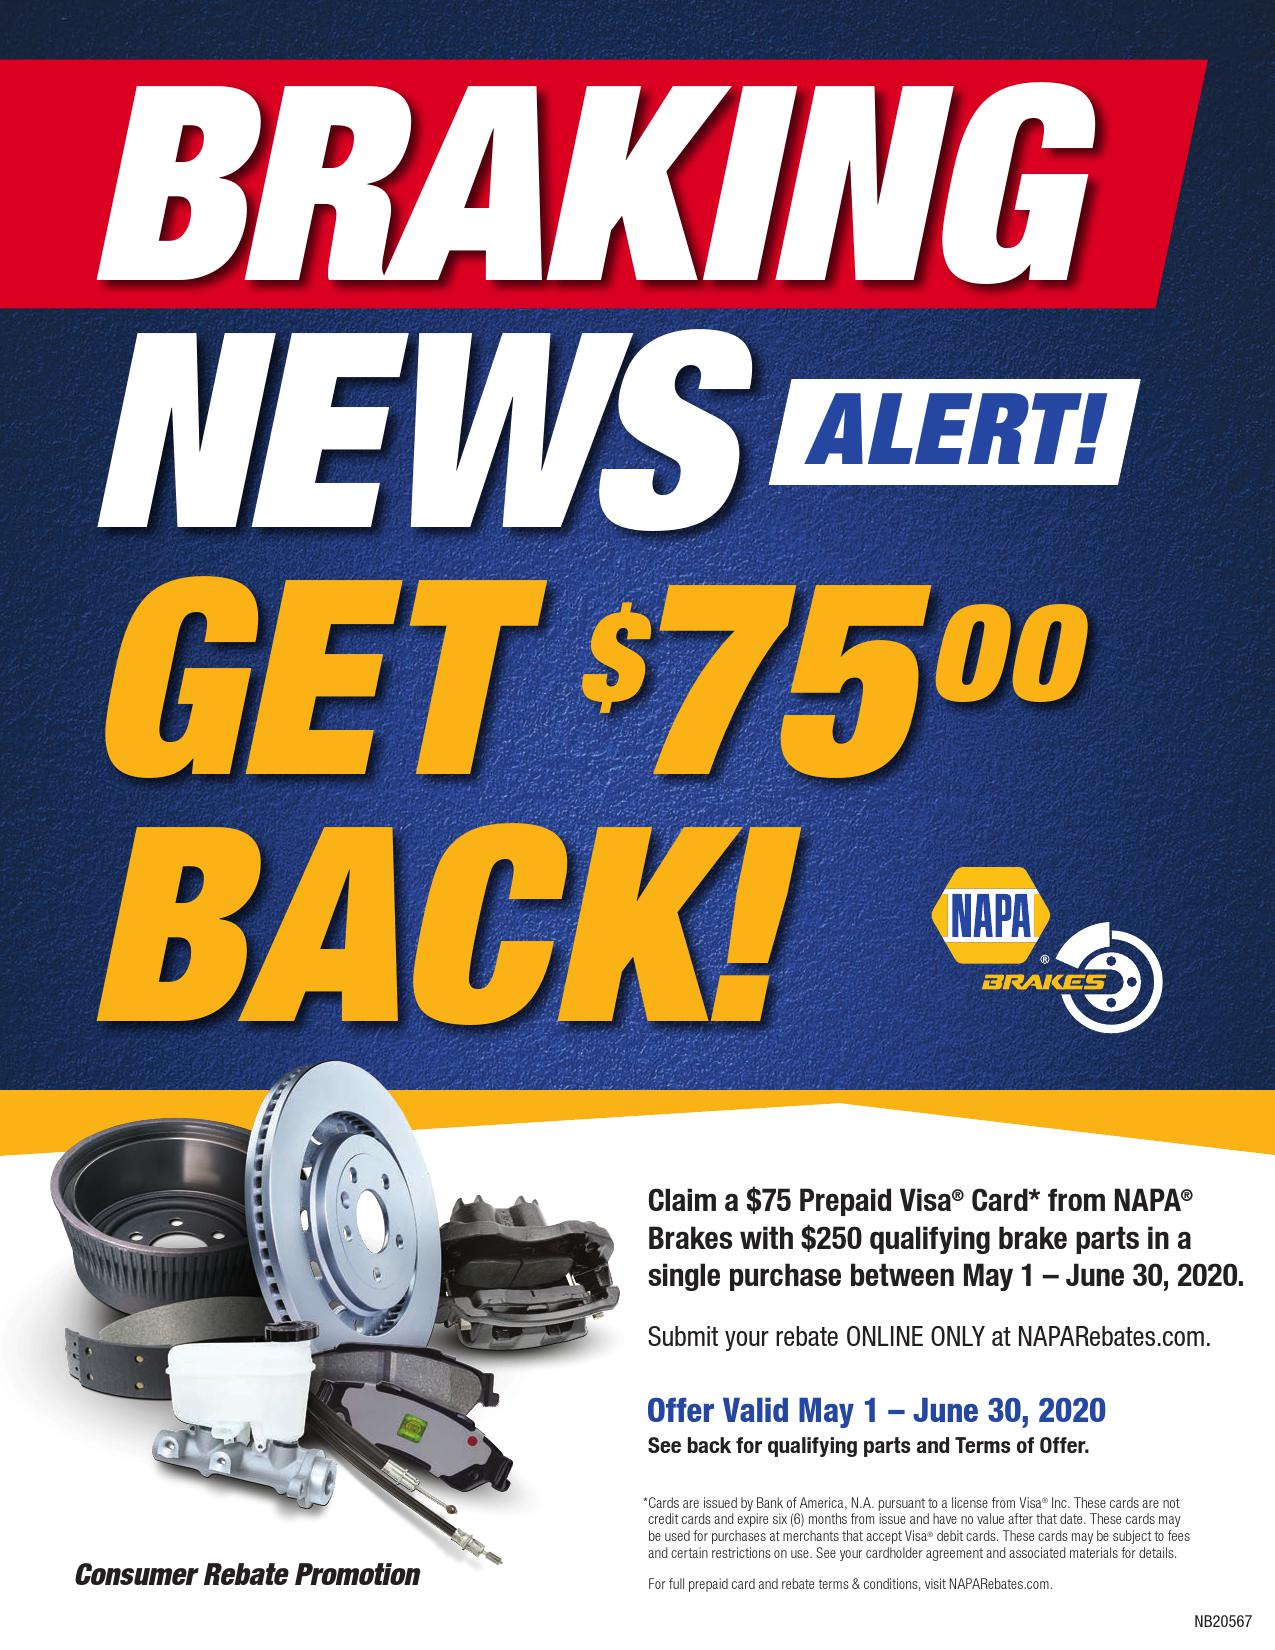 Claim a $75 Prepaid Visa Card from NAPA Brakes with purchase of $250 in qualifying brake parts.